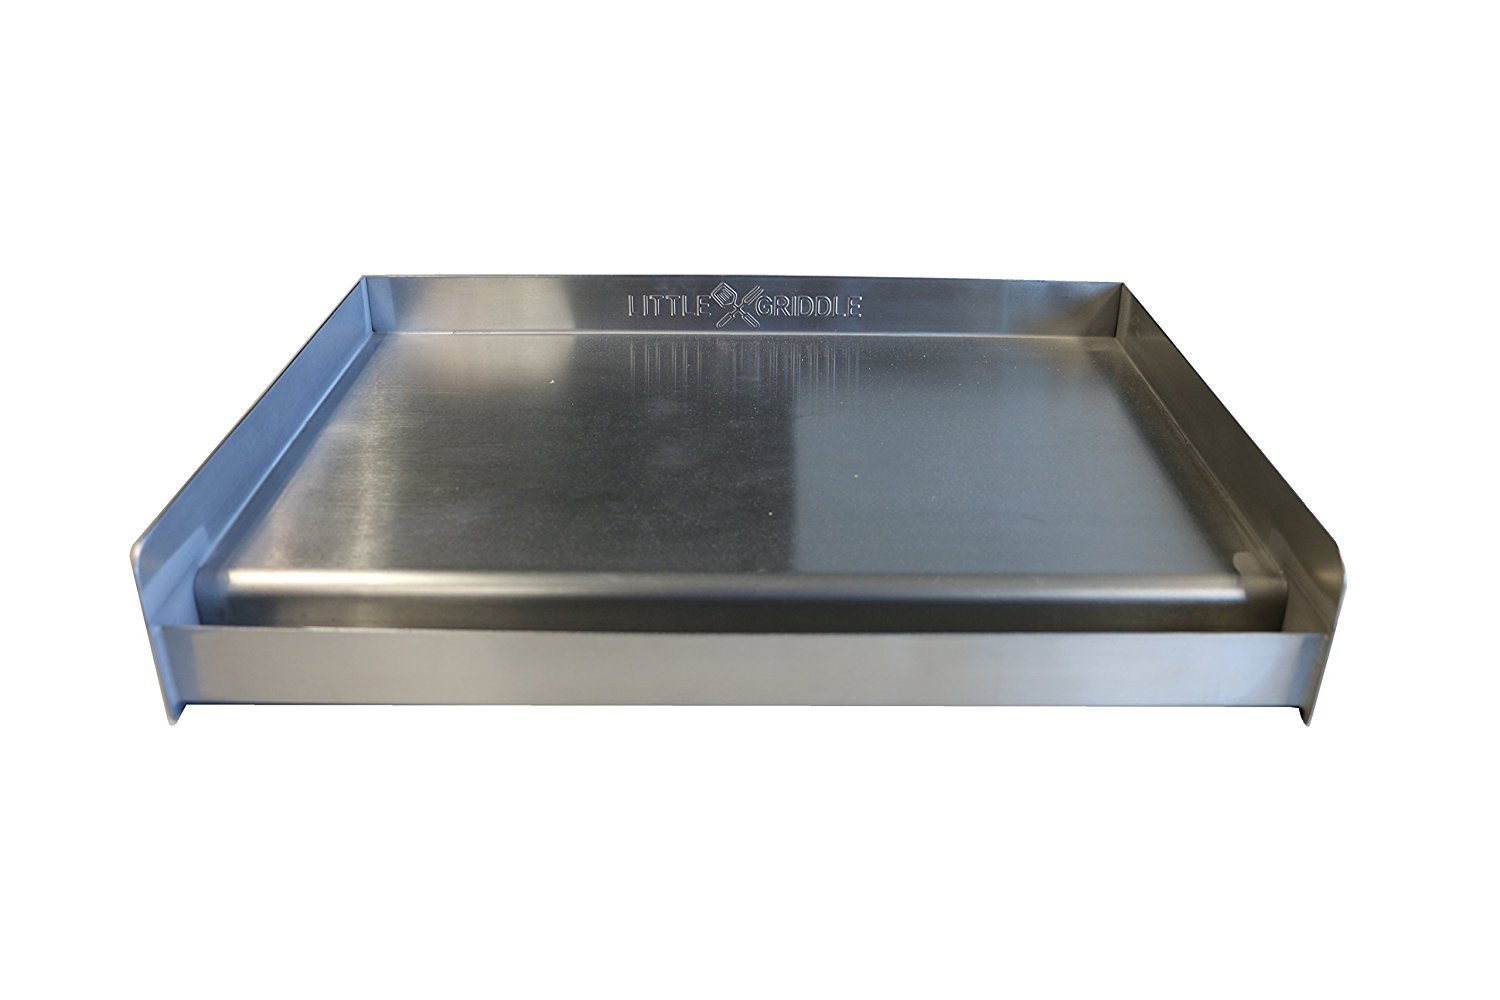 Little Griddle SQ180 Universal Griddle for BBQ Grills, Stainless (Formerly the Sizzle-Q) (Pack of 2) by Little Griddle (Image #2)